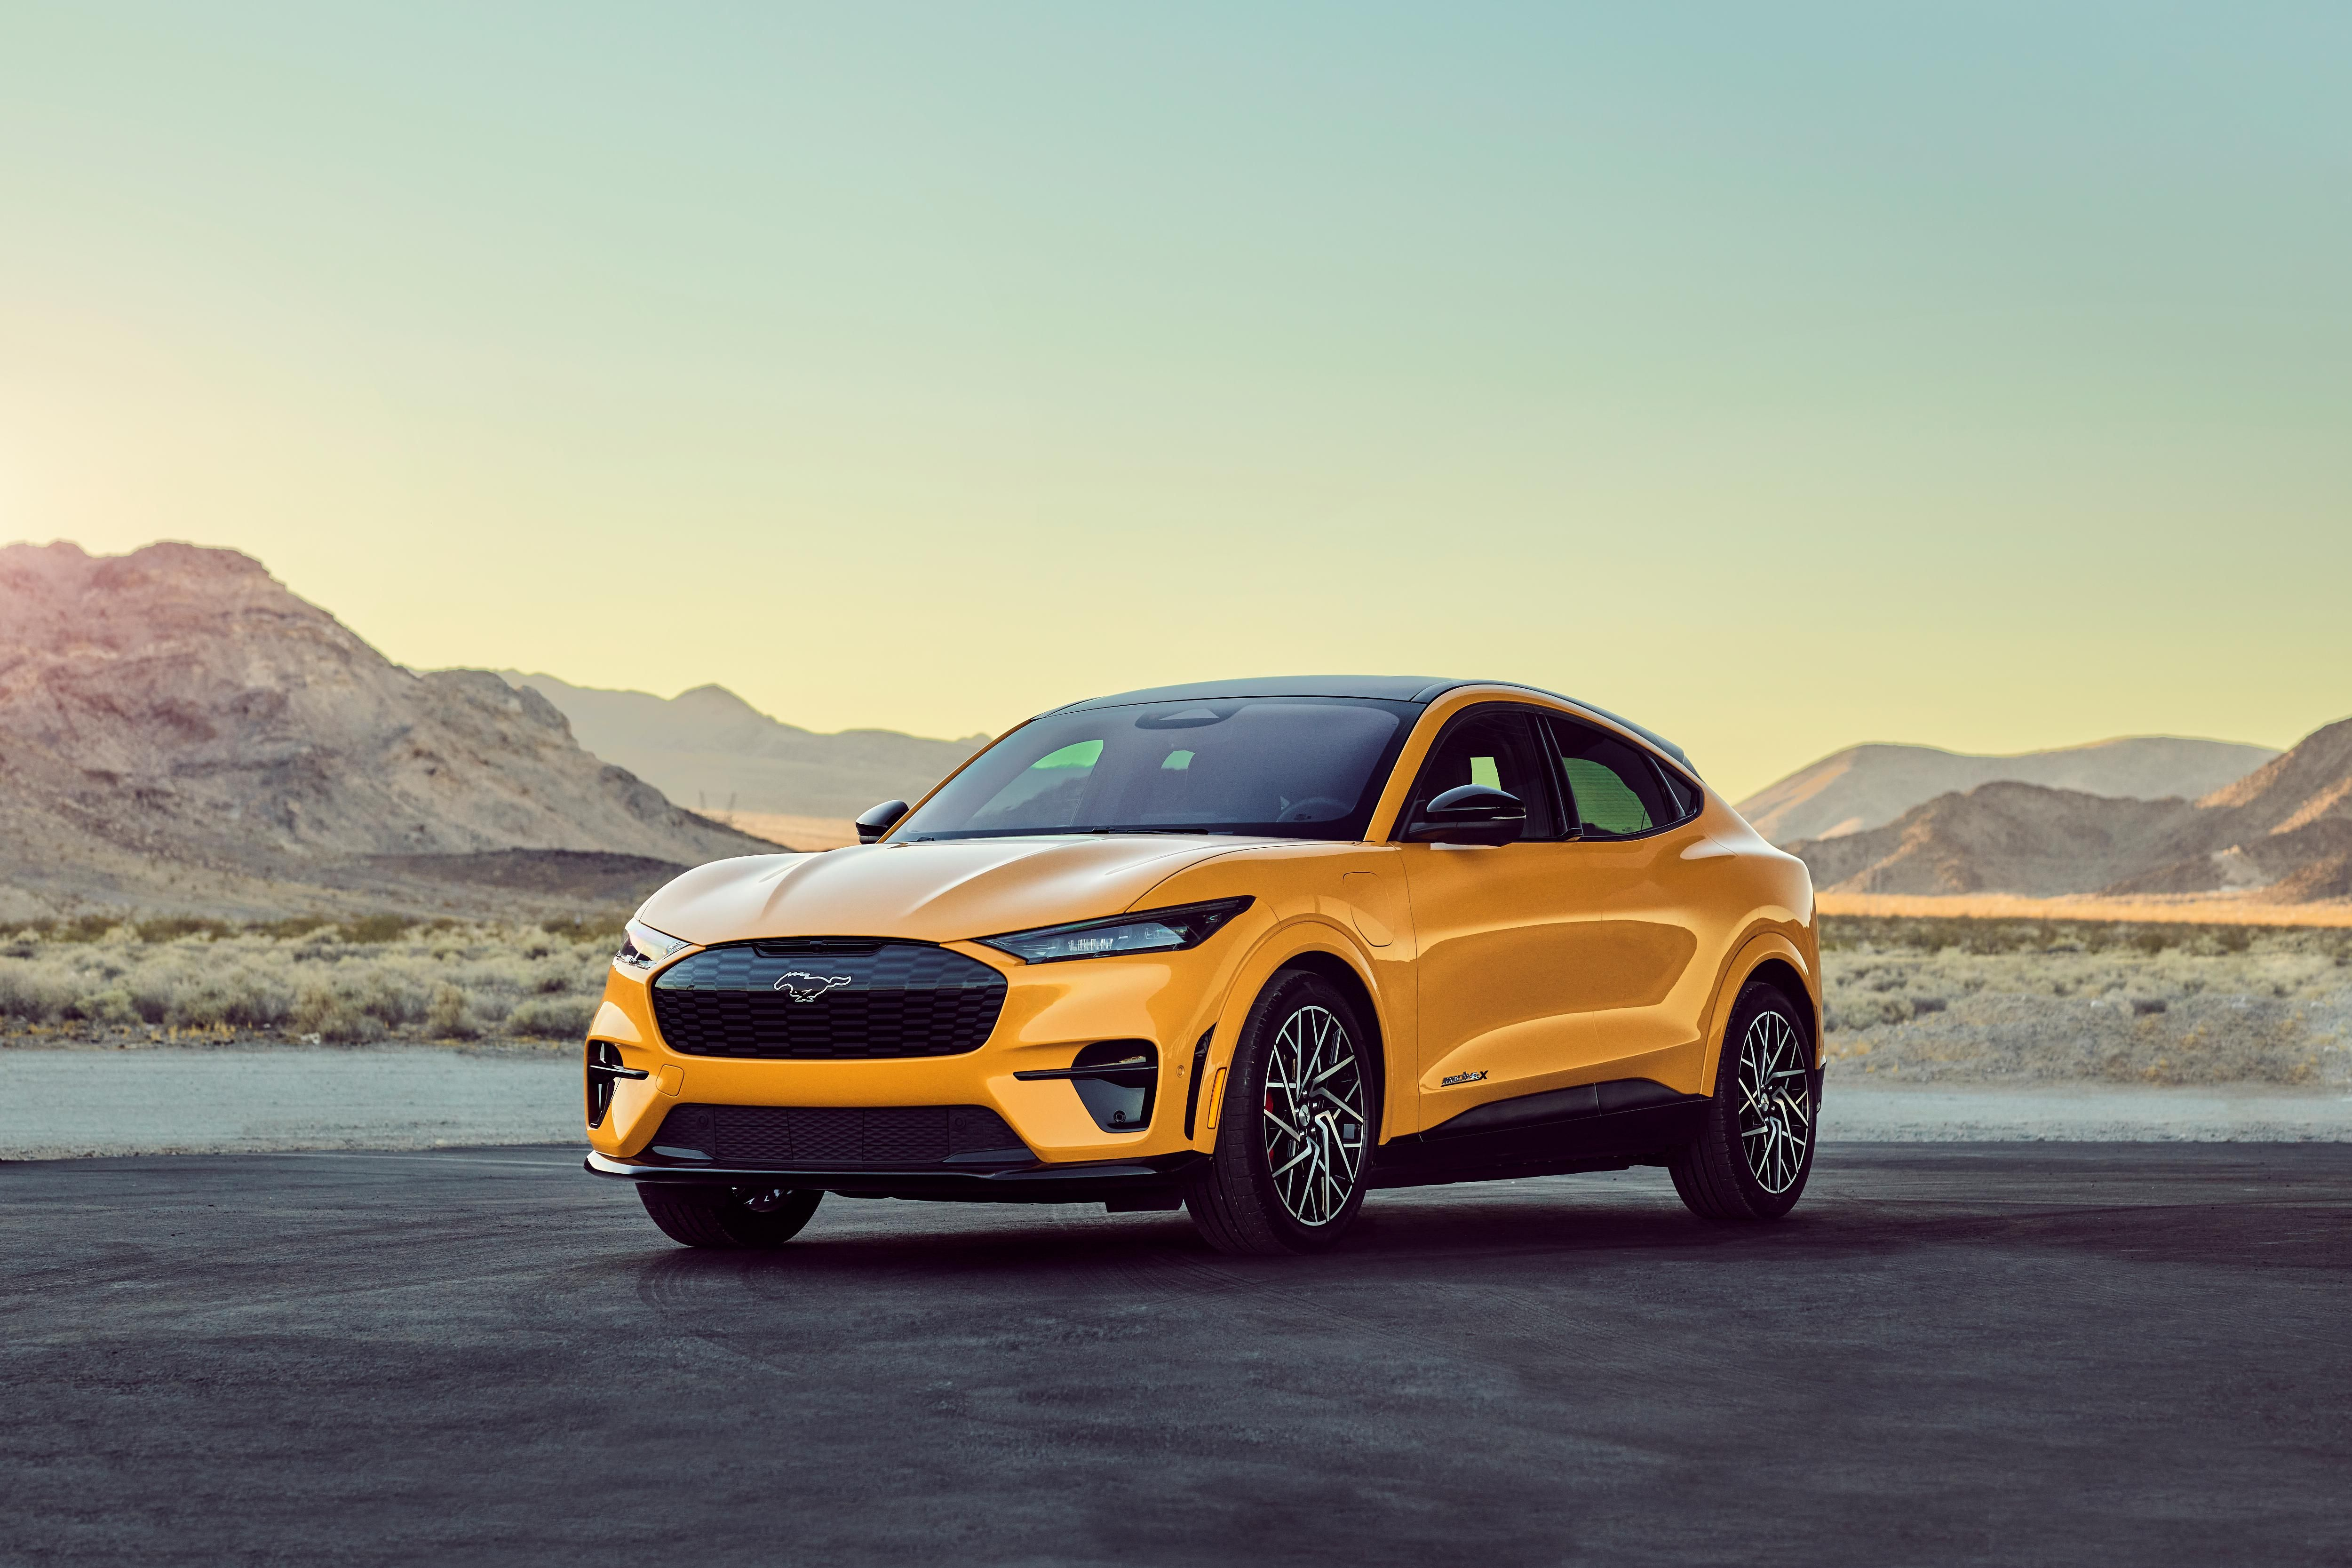 2021 Ford Mustang Mach E Gt Performance To Have 480 Hp 634 Lb Ft